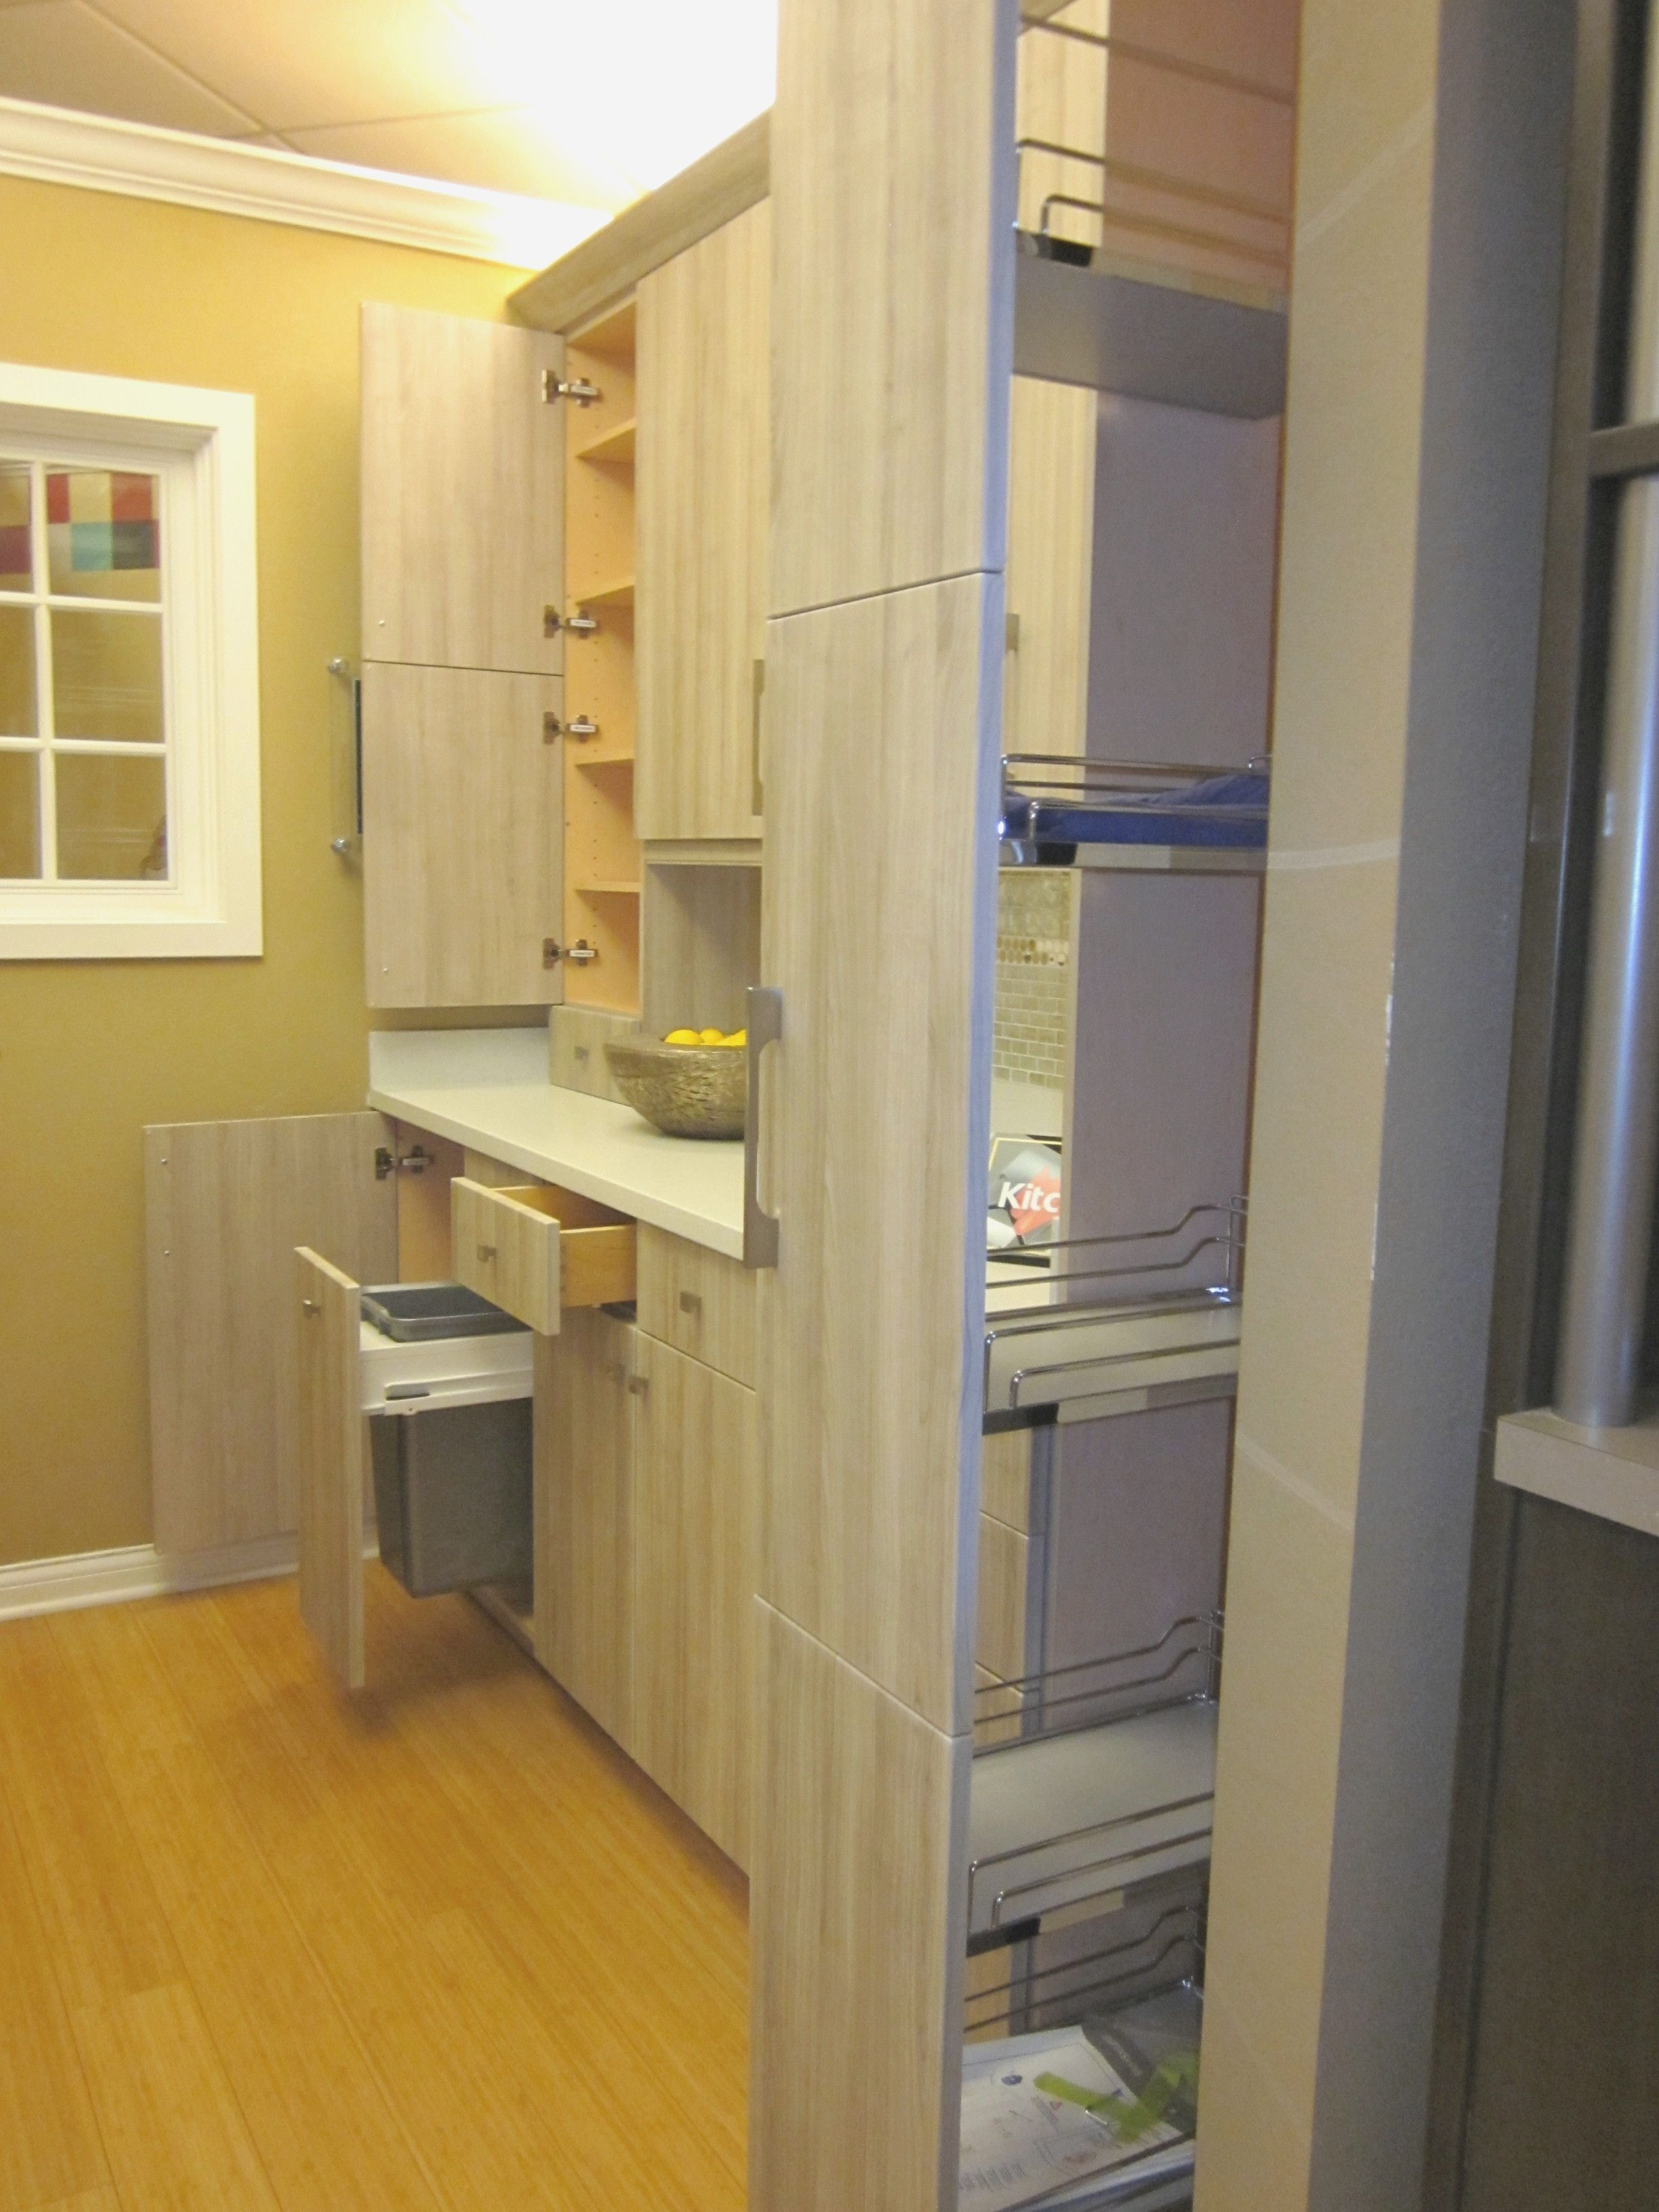 Find Kitchencraft In Janesville Madison As Well As Other Cabinet Companies Has A Great Selection Of Full Pul Kitchen Cabinets Cabinet White Kitchen Cabinets